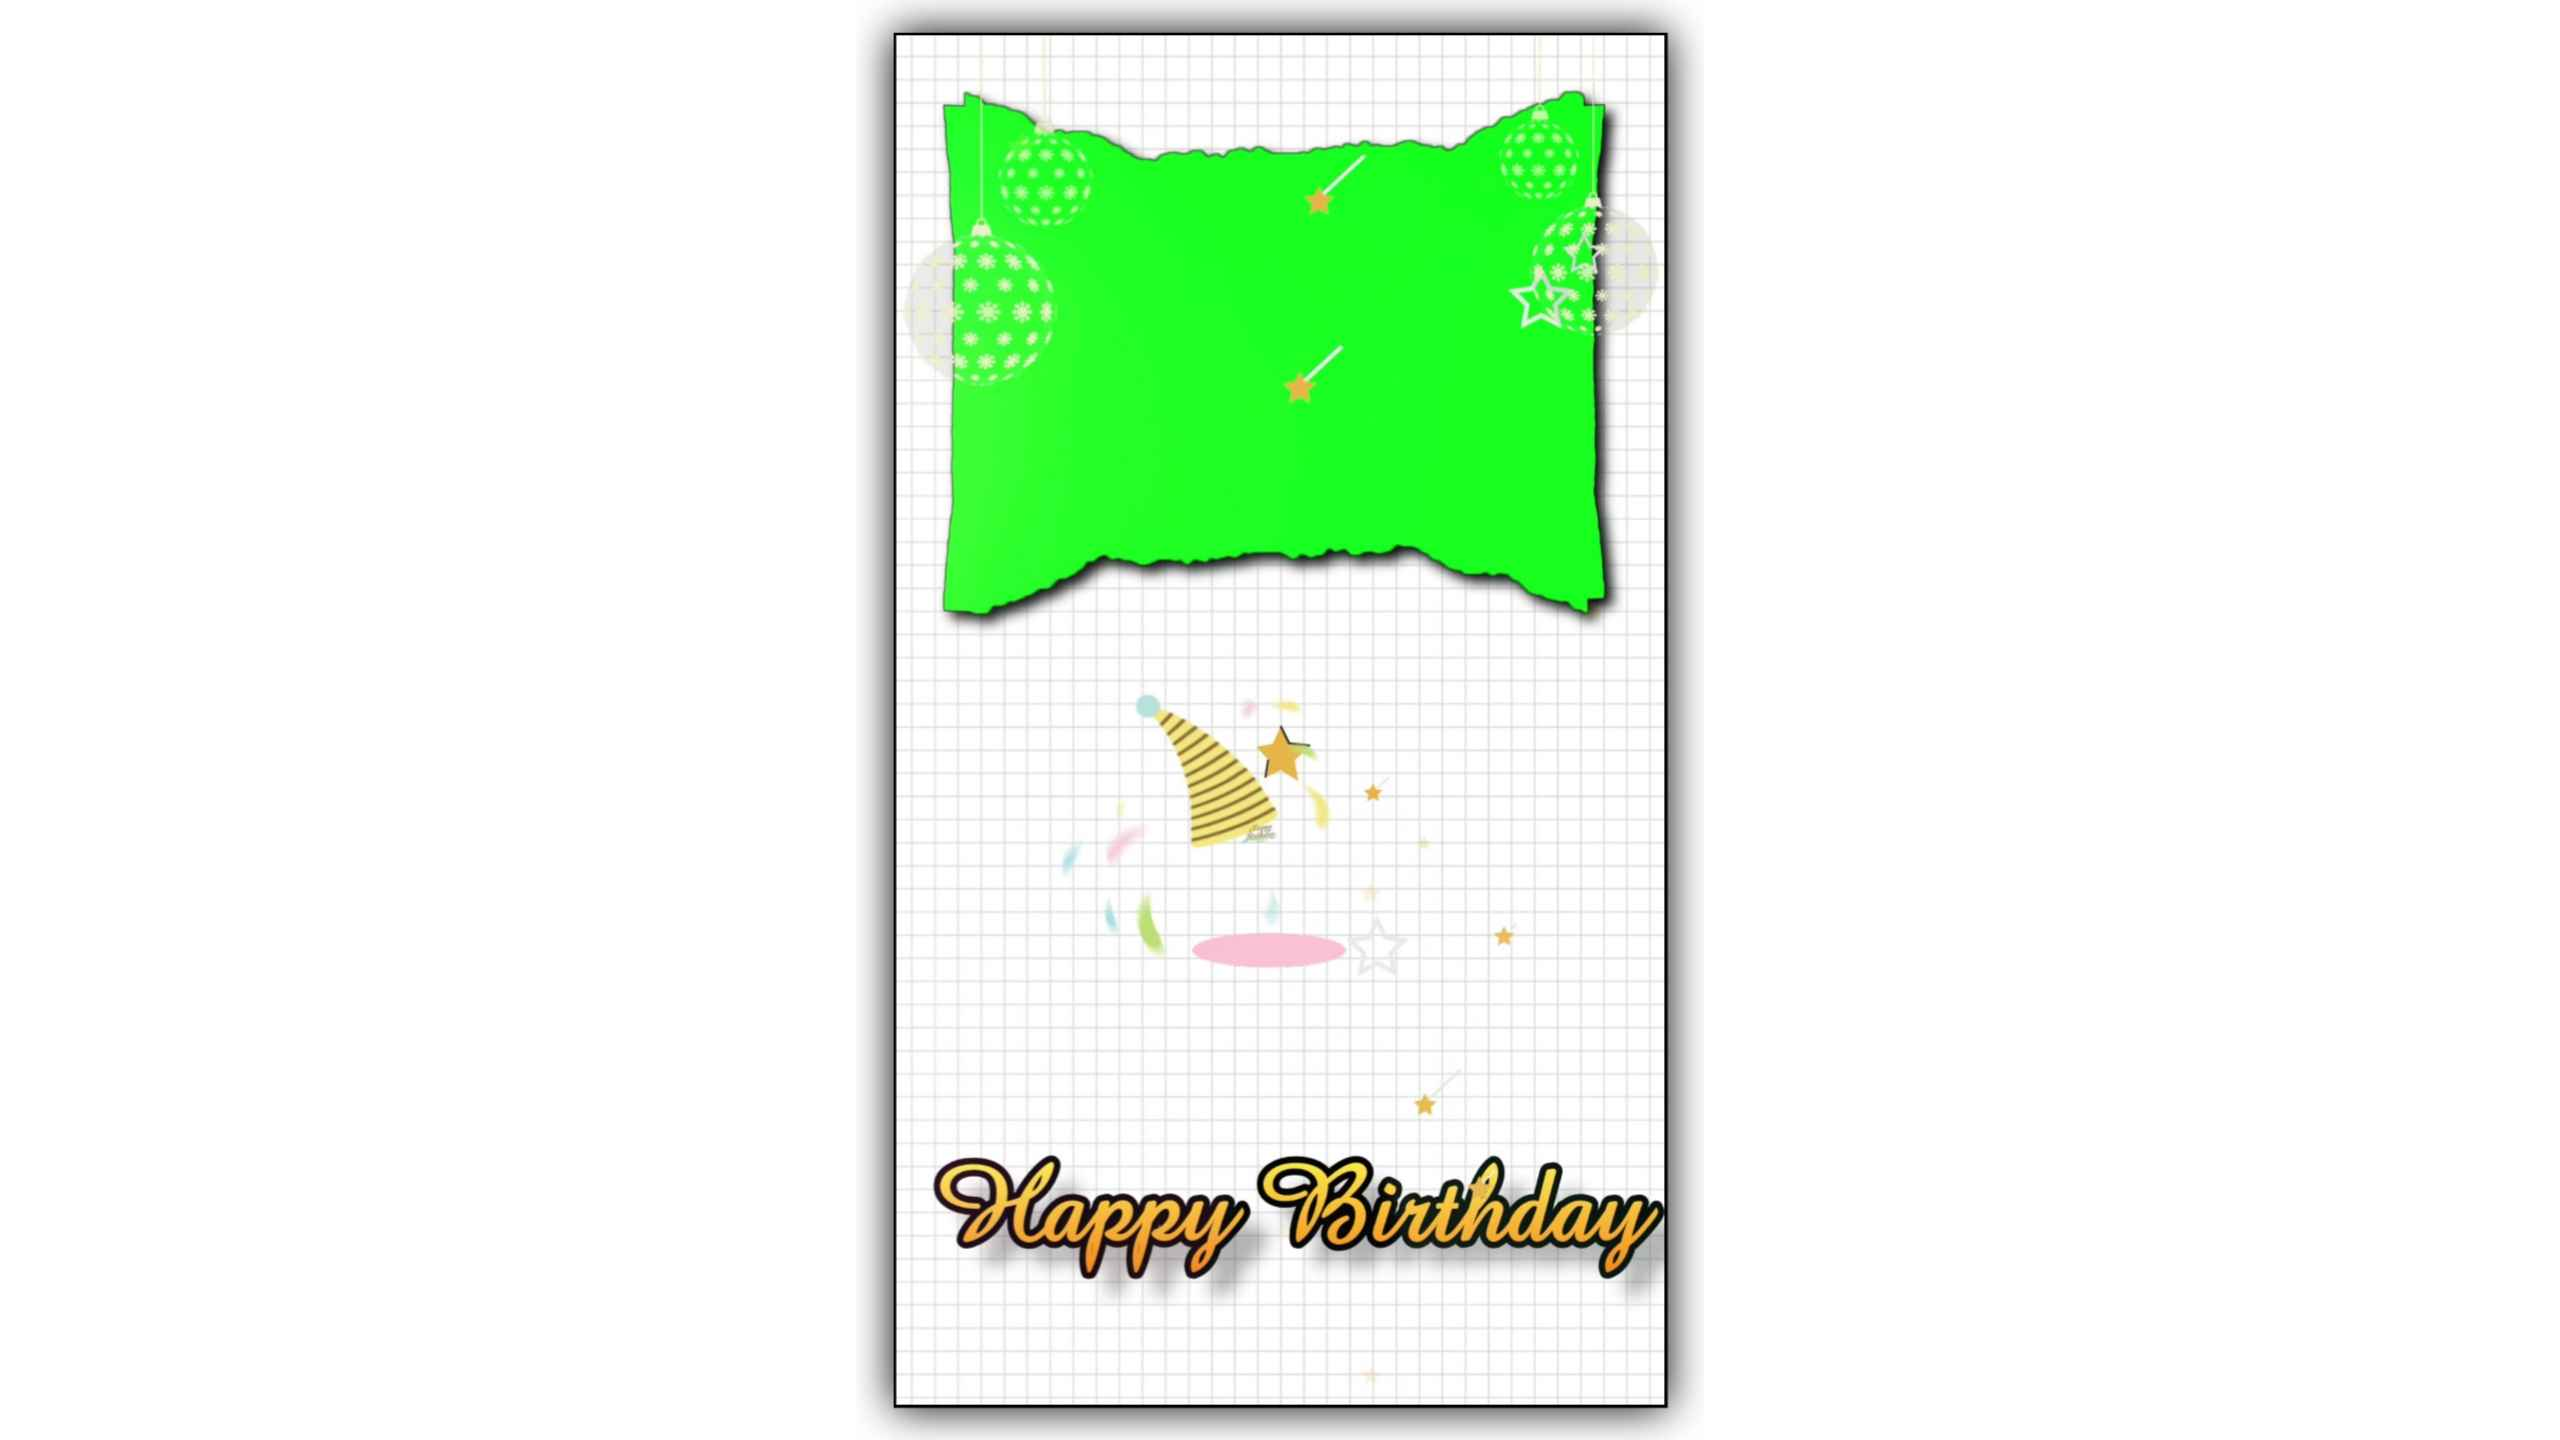 Happy Birthday Green Screen Text Reveal Background Video Full HD